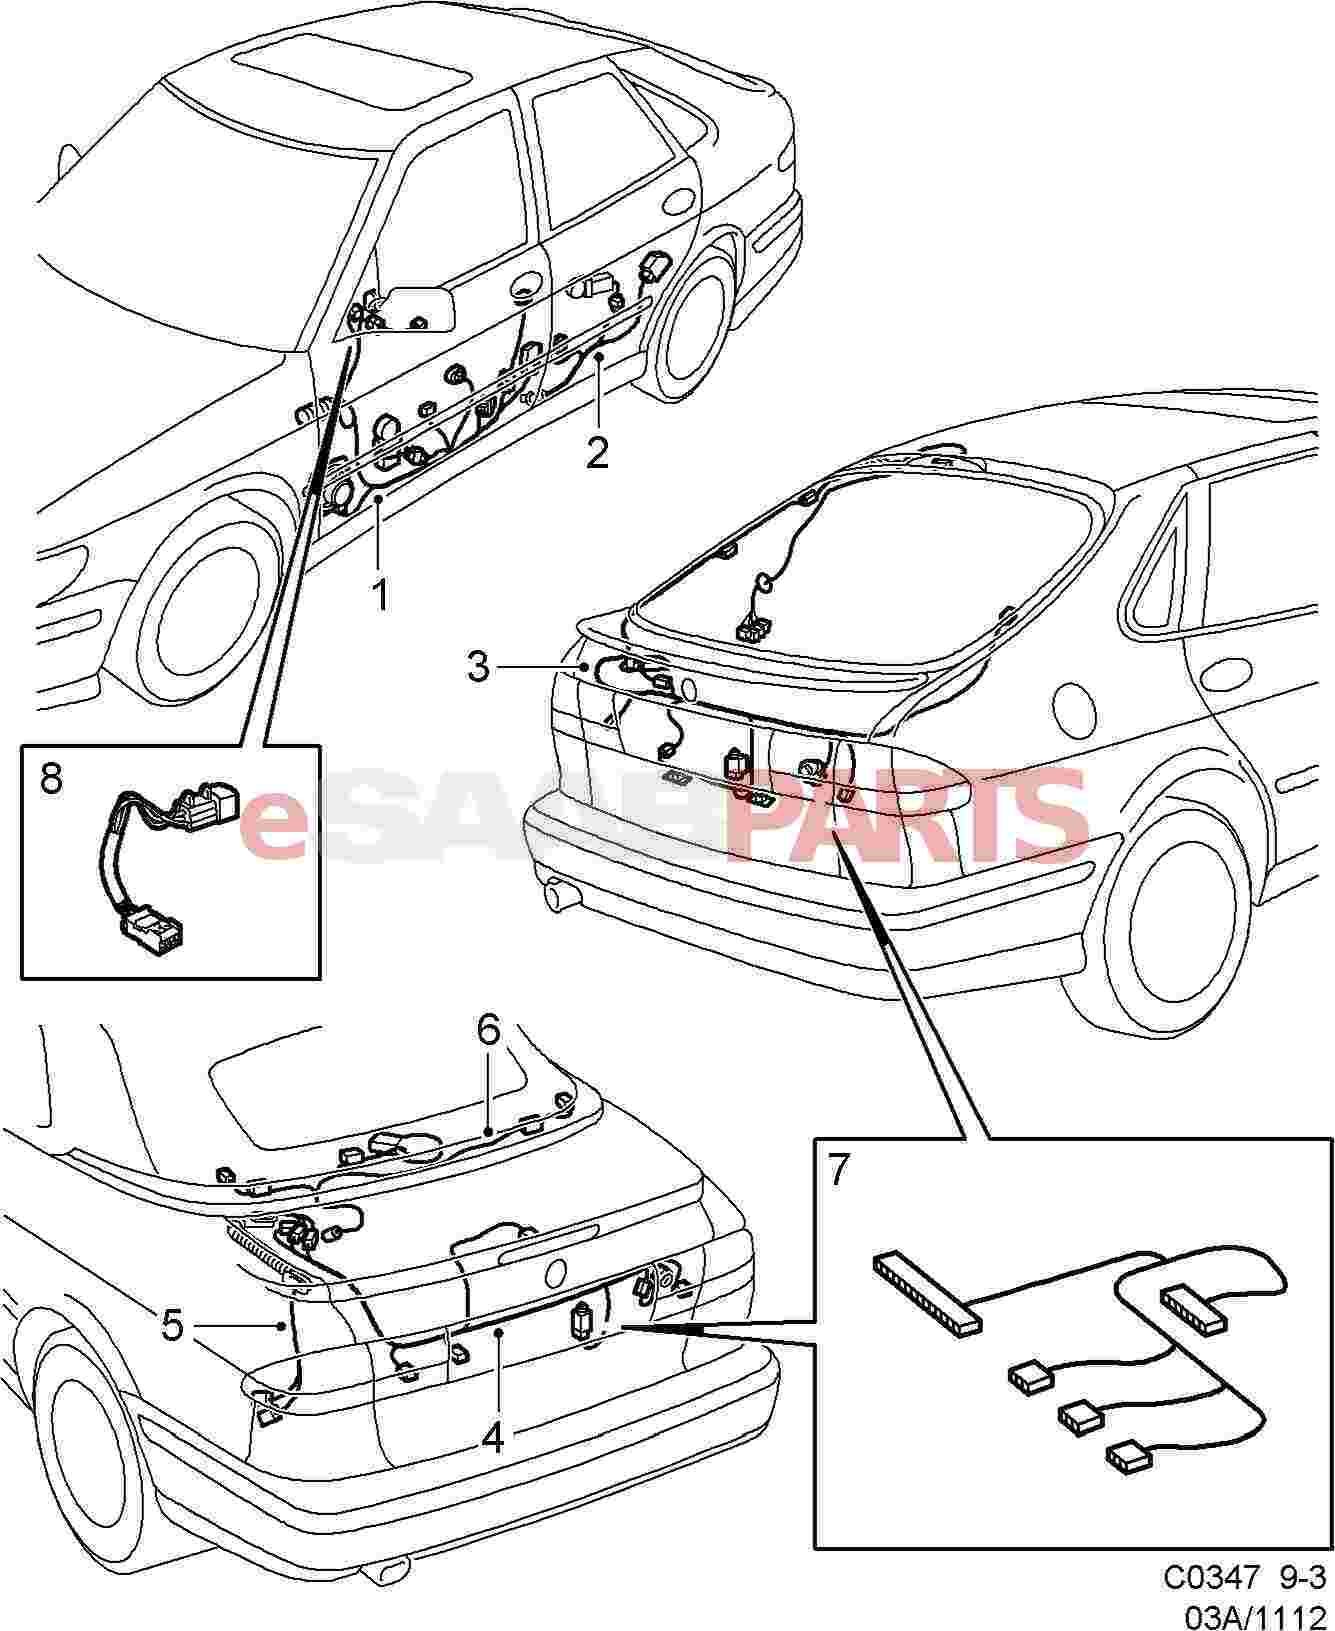 hight resolution of esaabparts com saab 9 3 9400 electrical parts wiring